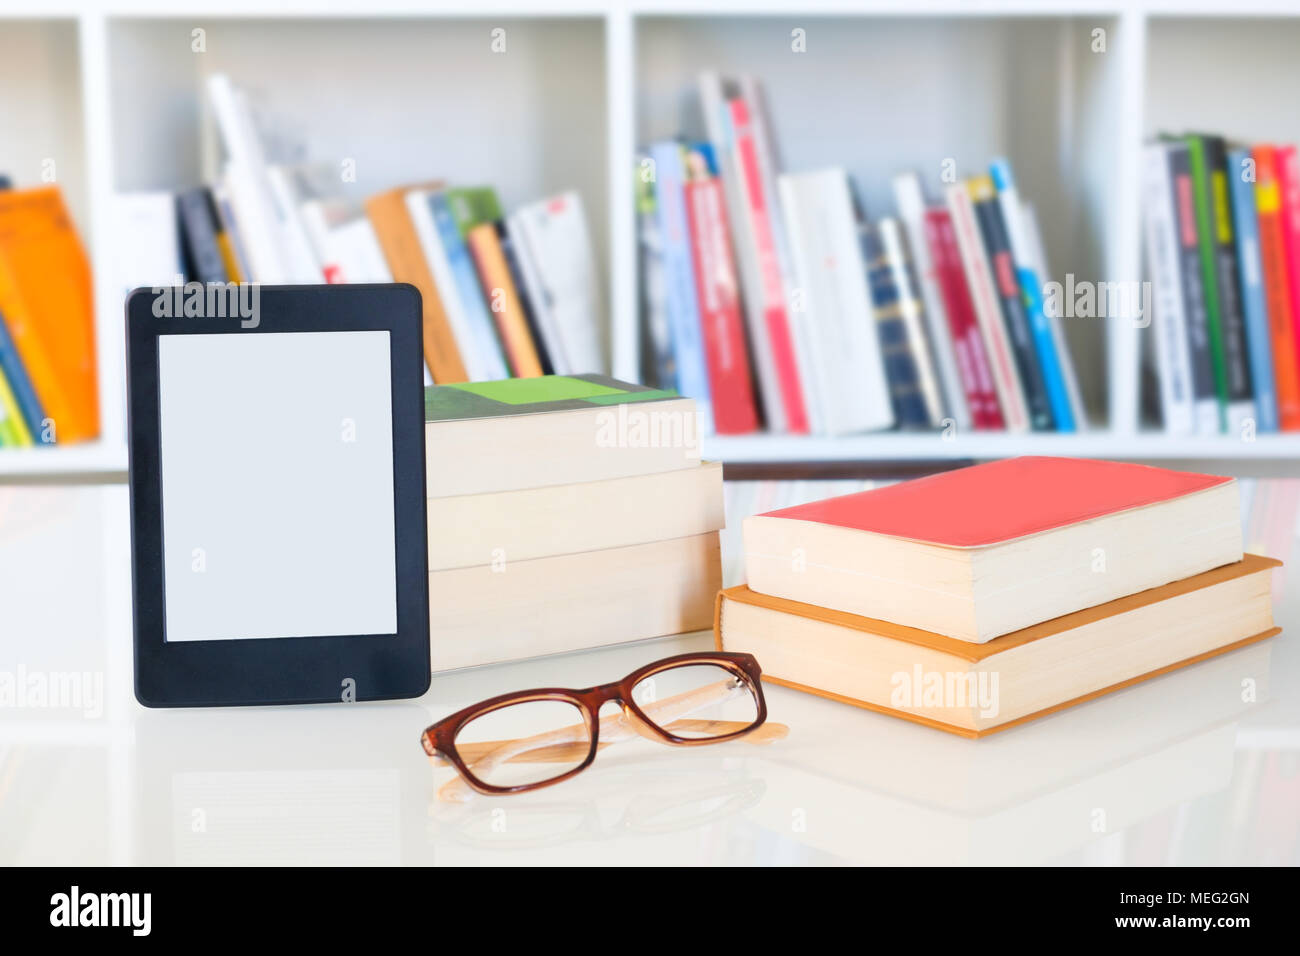 Internet and electronic books concept with e-book reader - Stock Image